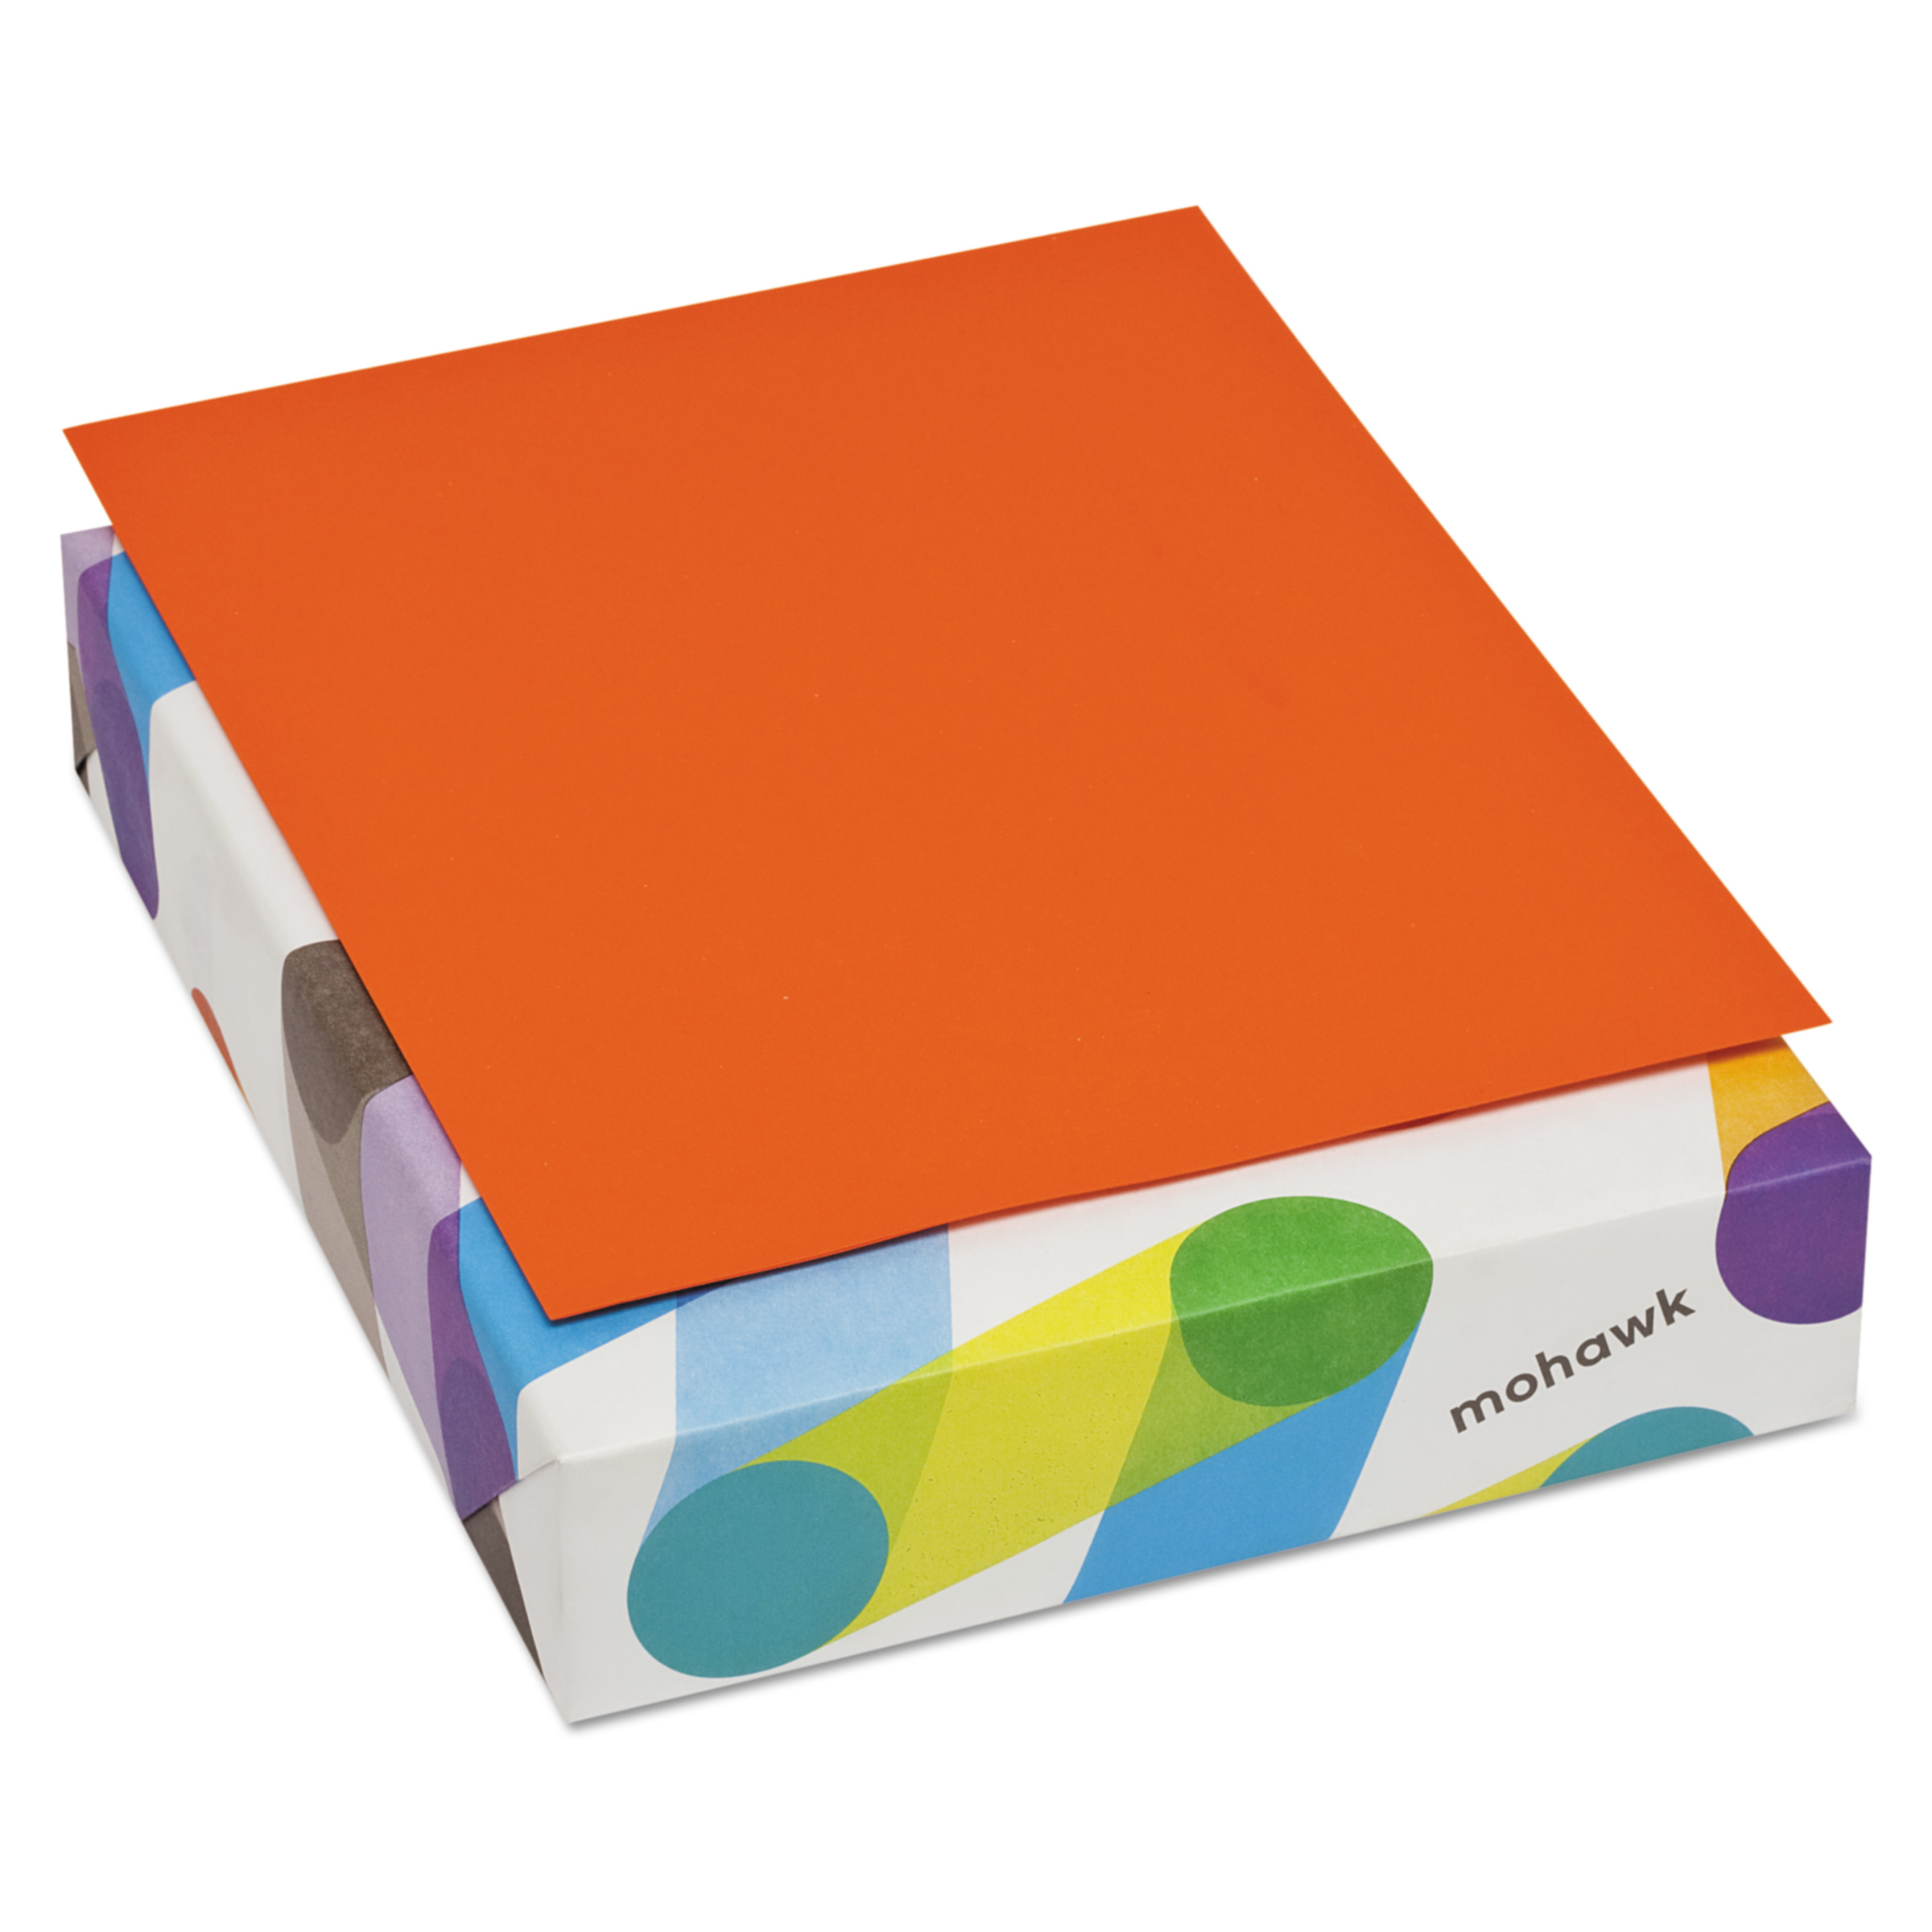 Mohawk BriteHue Multipurpose Colored Paper, 20lb, 8 1/2 x 11, Orange, 500 Sheets -MOW472608